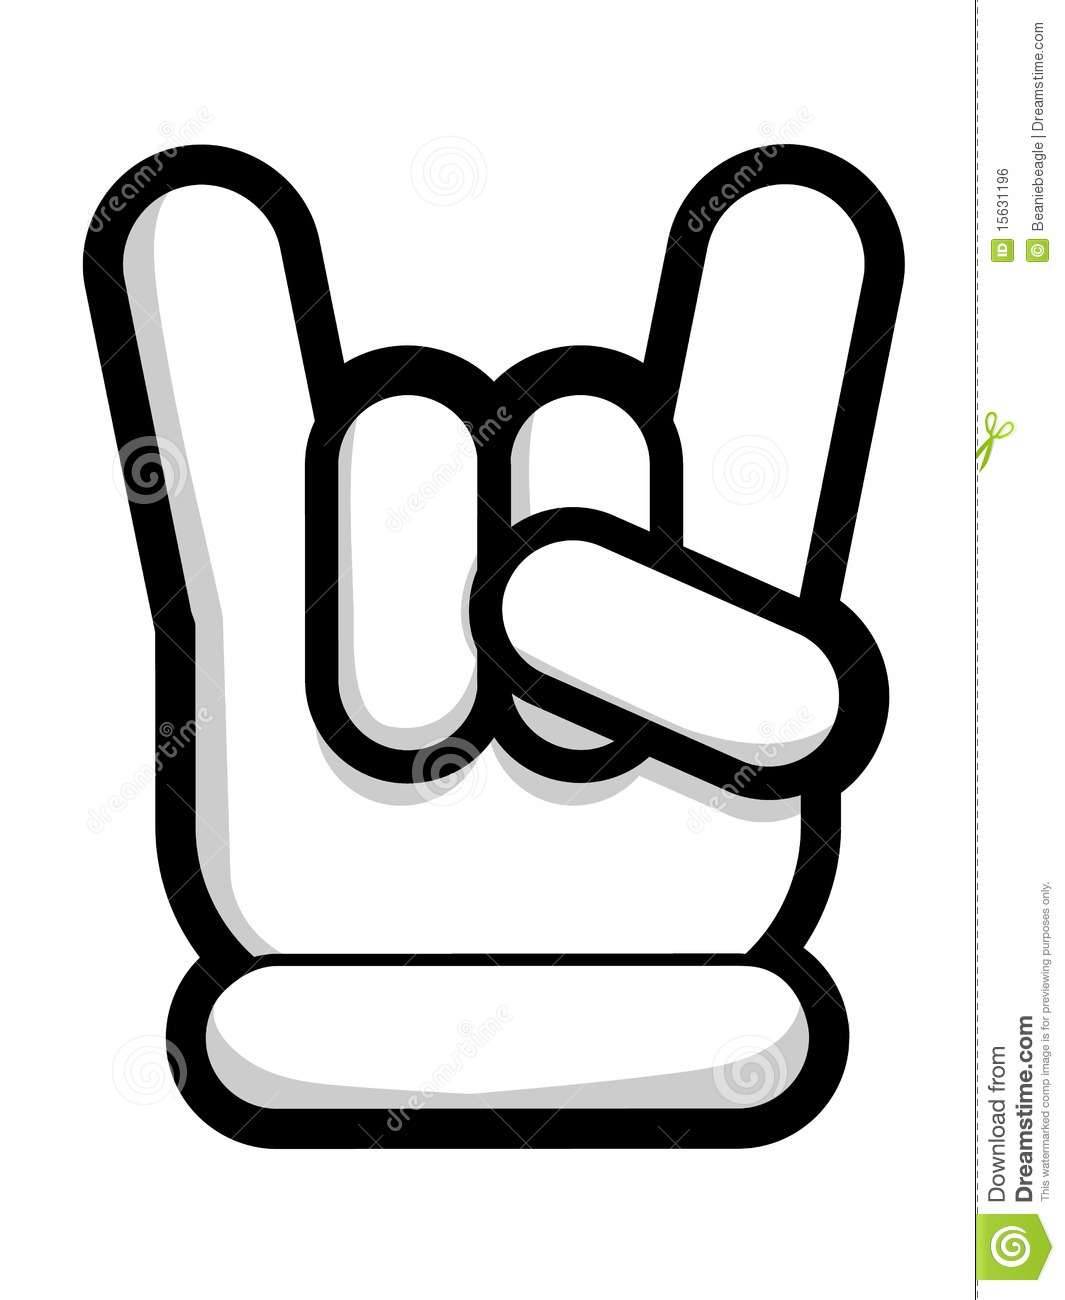 cute variation of the devil horns hand symbol often associated with ...